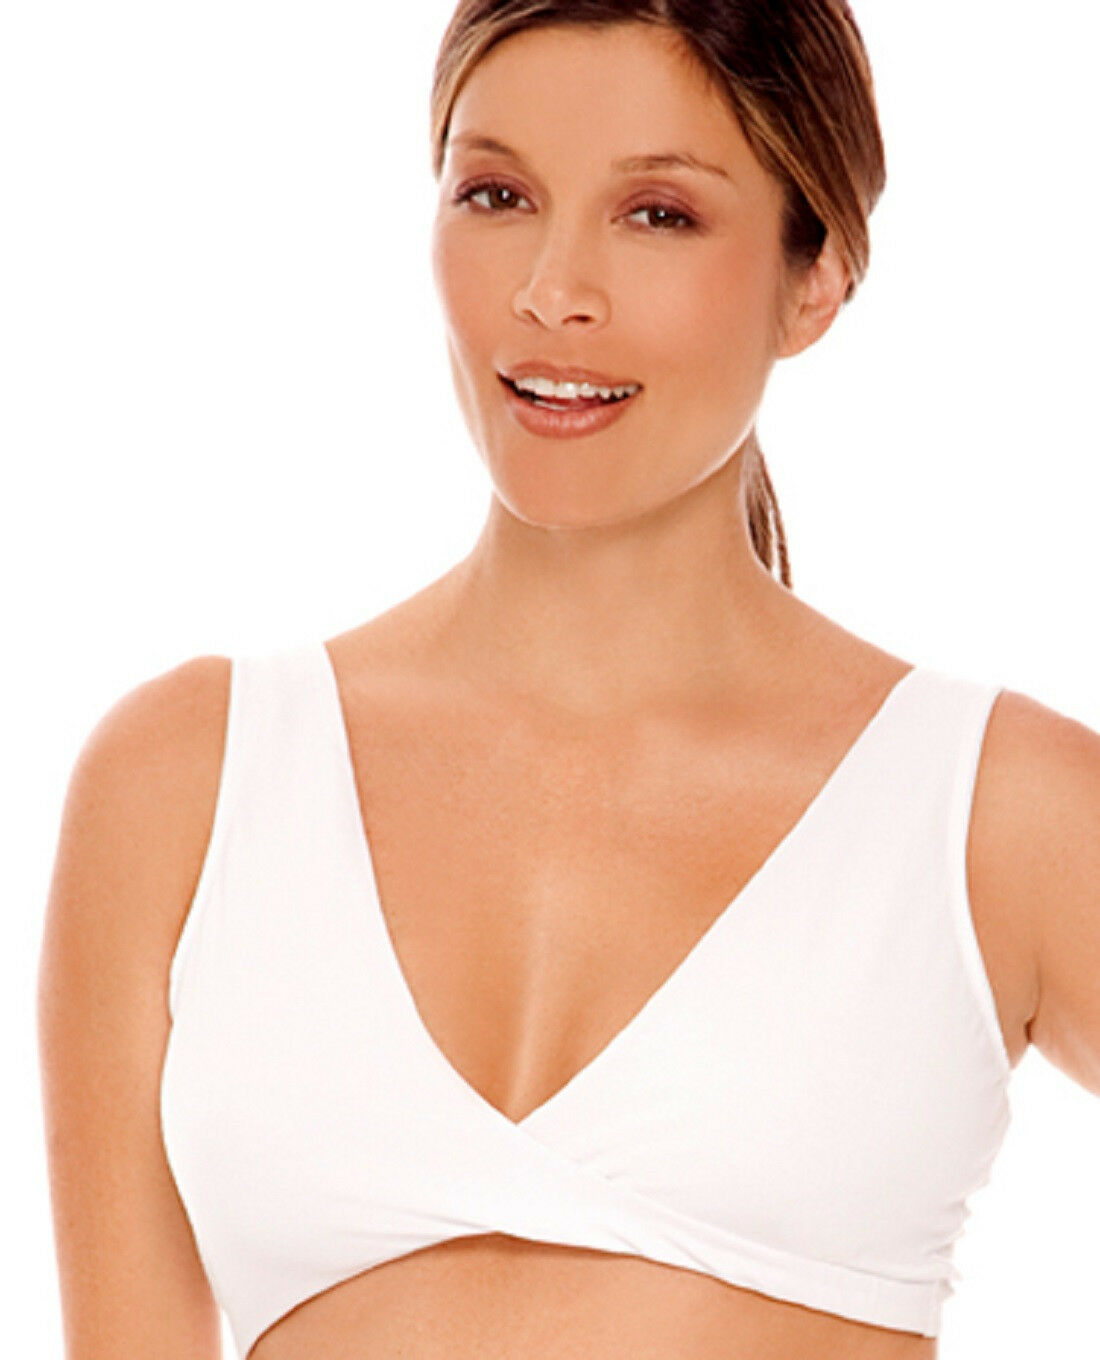 2d9832193b983 Details about Lamaze Cotton Spandex Sleep Bra for Nursing and Maternity -  LM 106